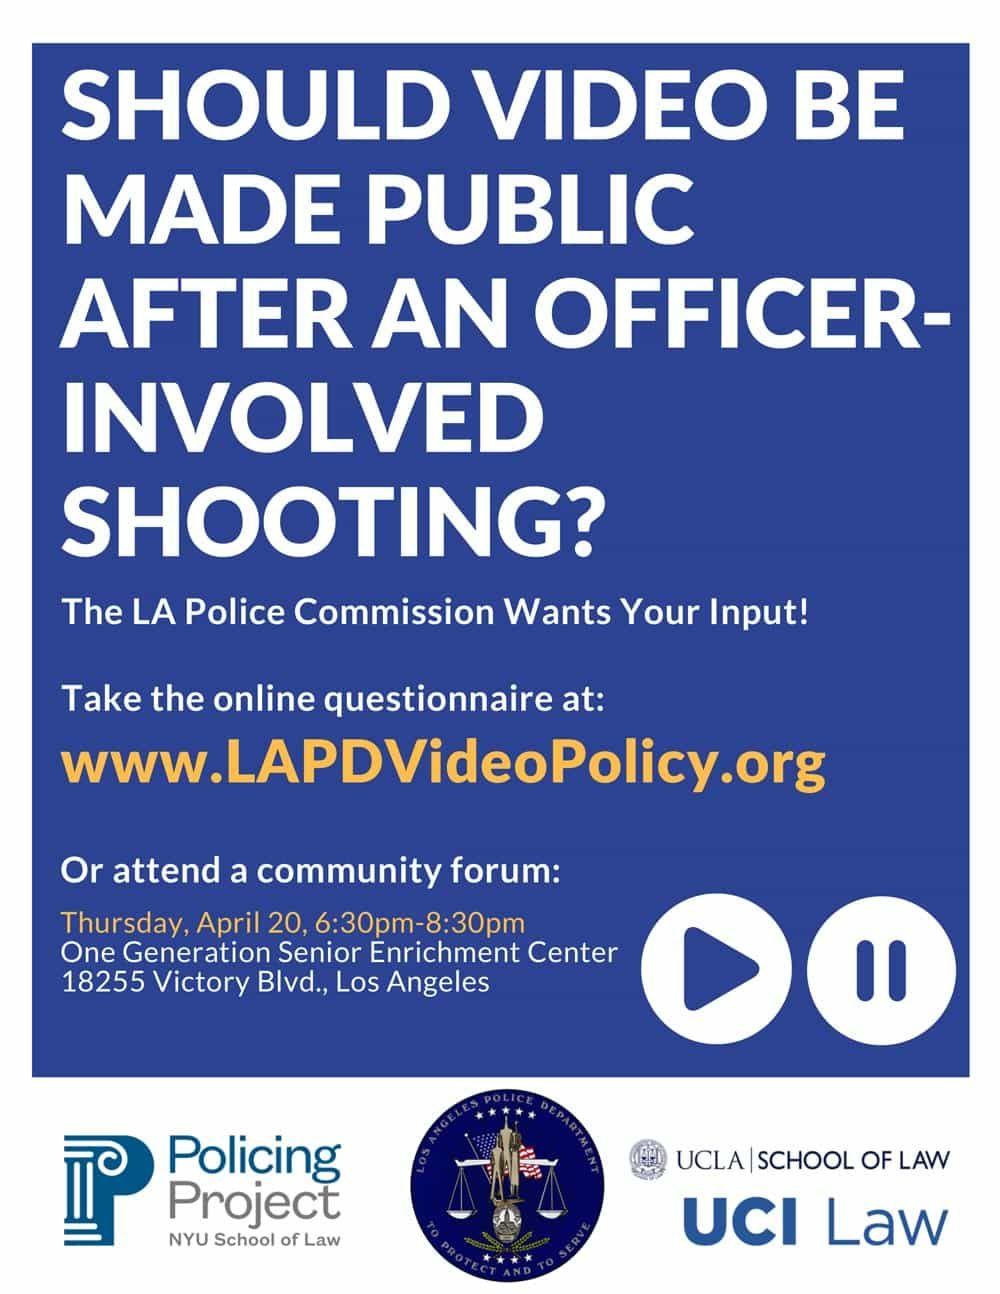 Community Forum: Public Release of Officer-Involved Shooting Videos